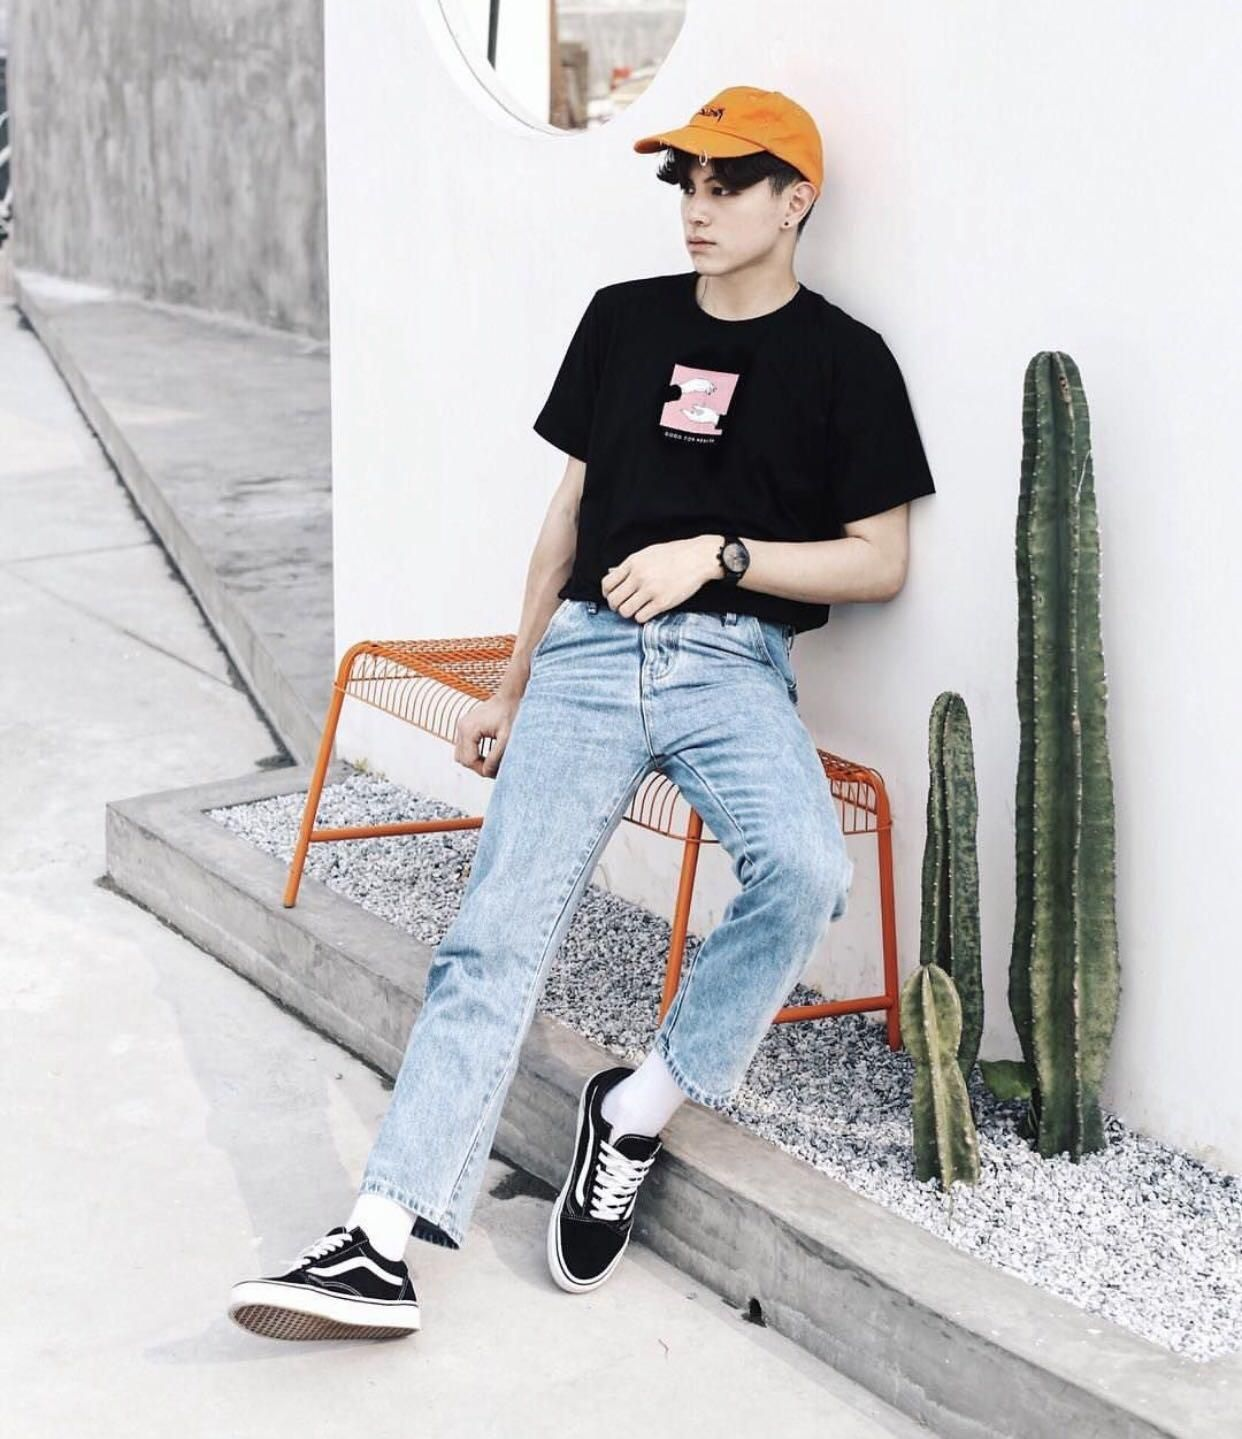 Skater Boy For Today From Alvinlvin S Closet Outfits Skater Boy Fashion